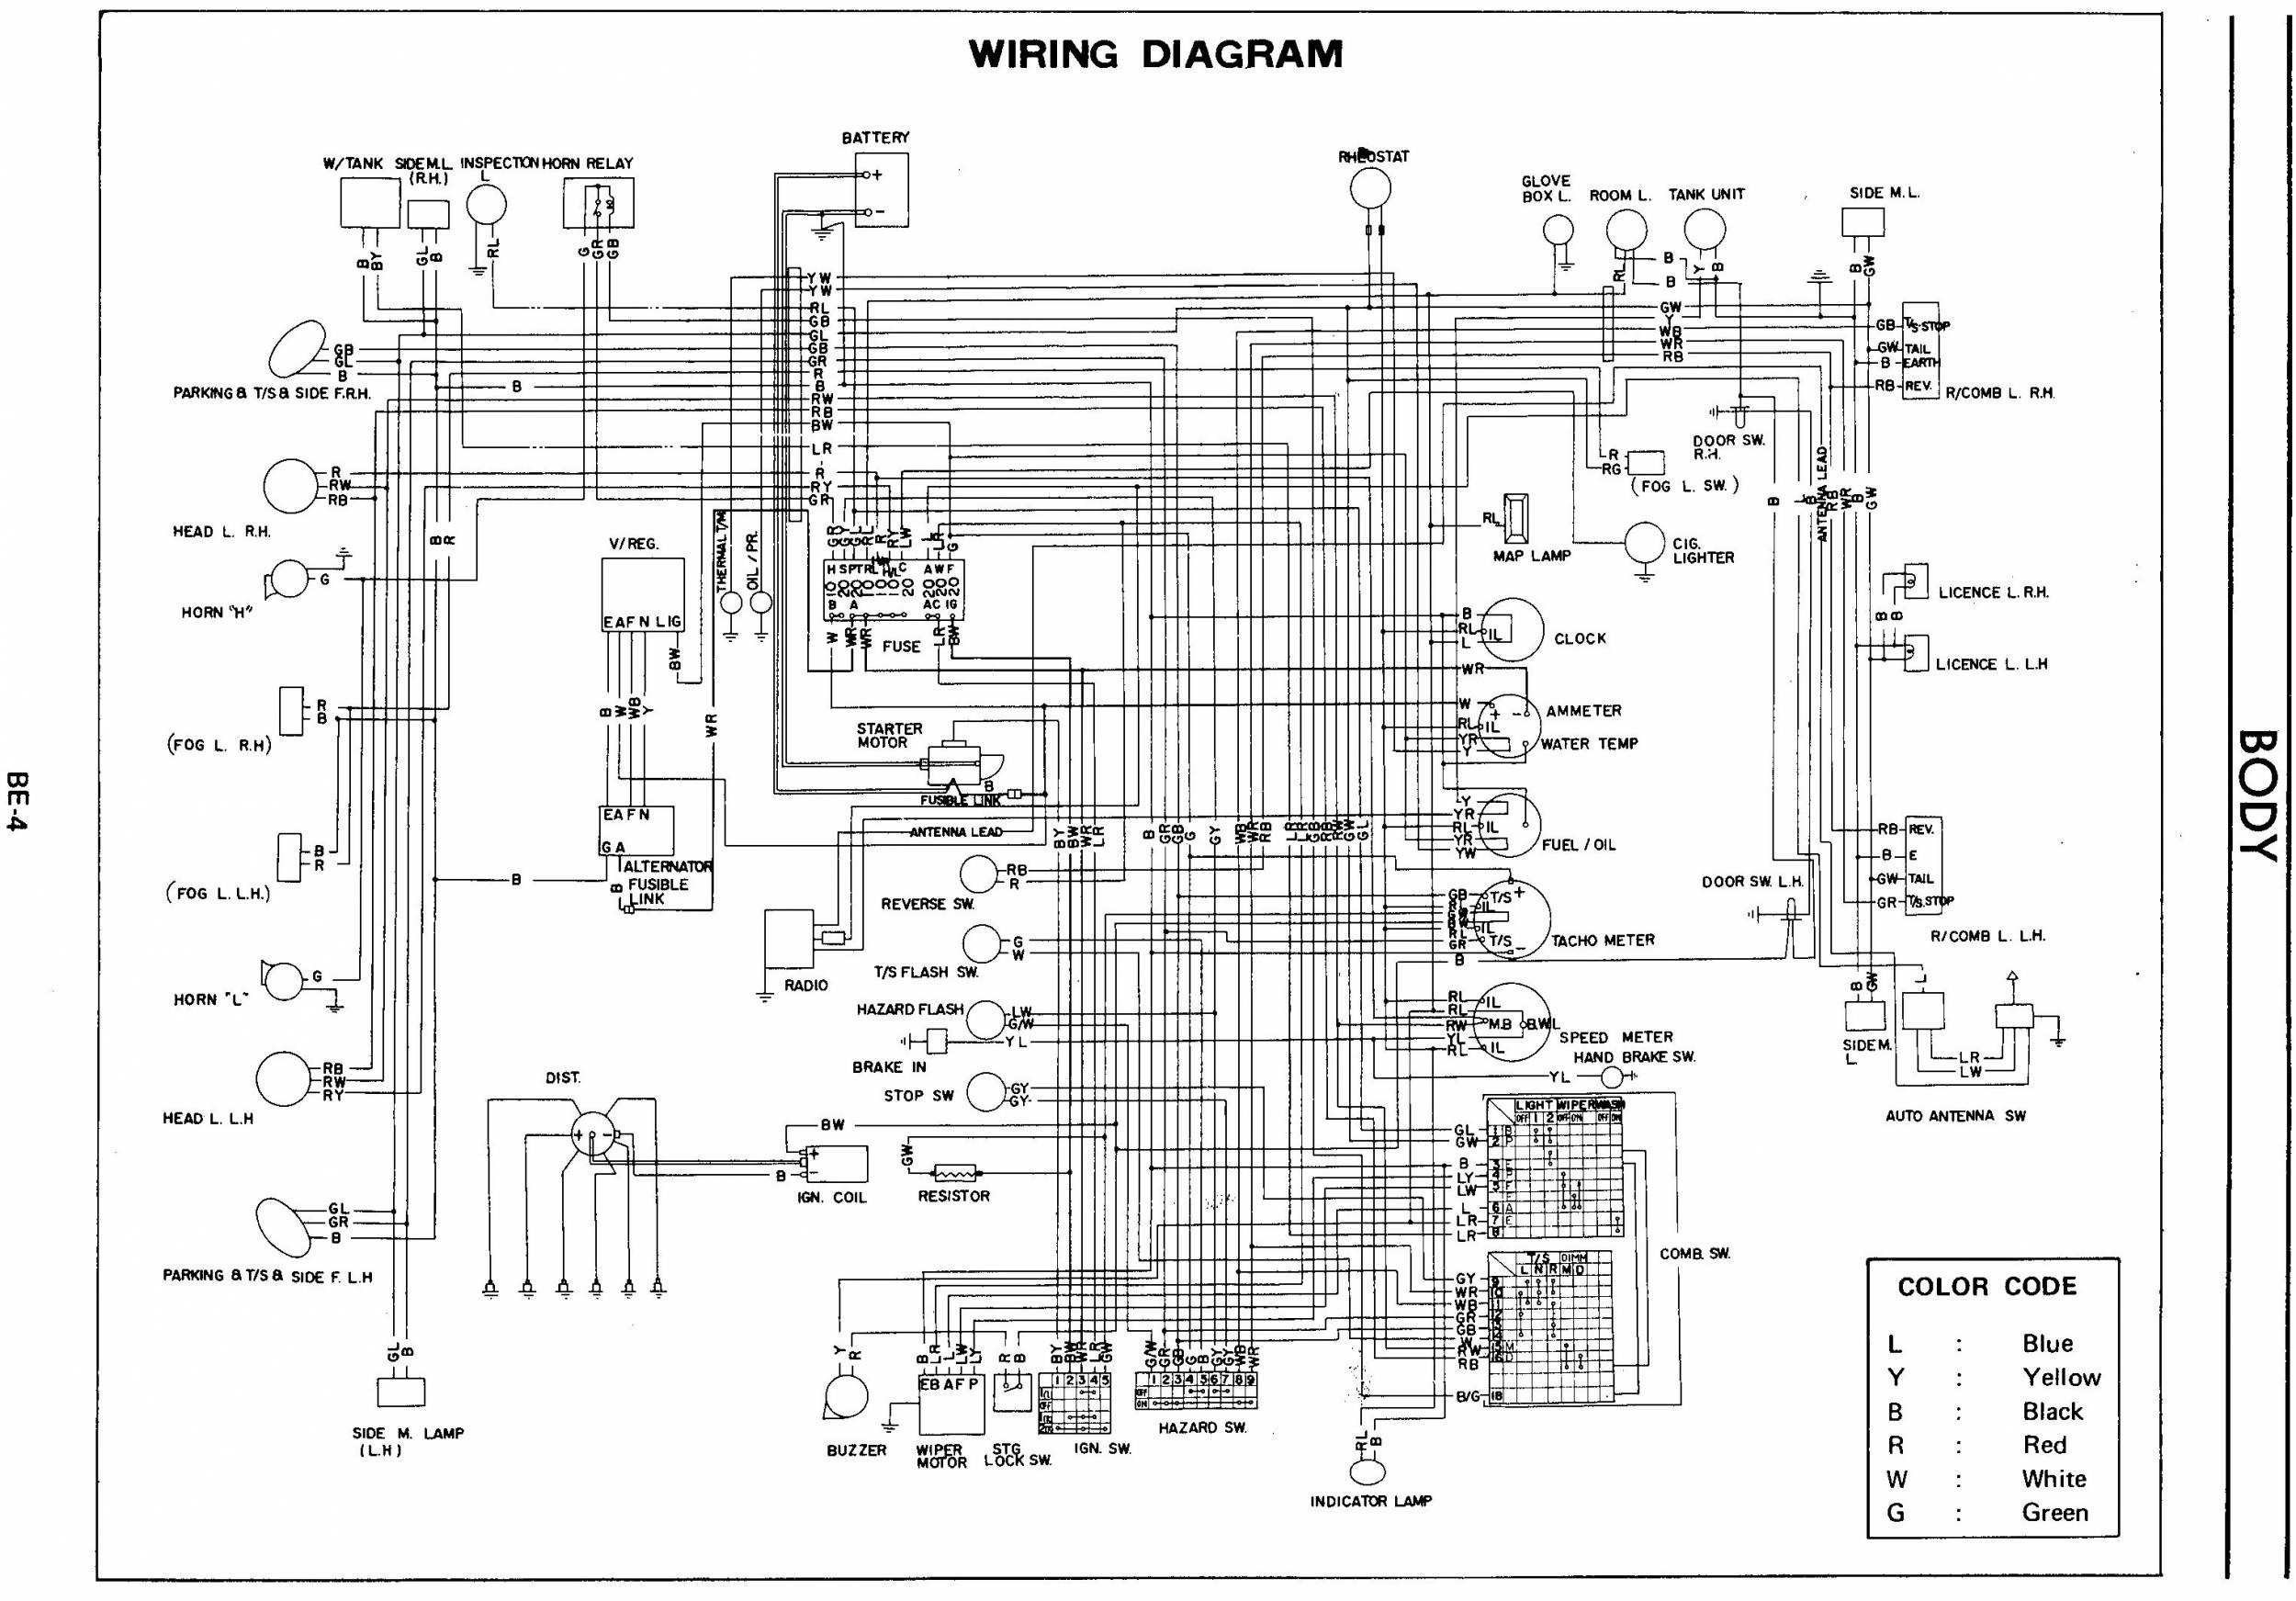 Mercedes Ml320 Engine Diagram Wiring Diagrams Konsult